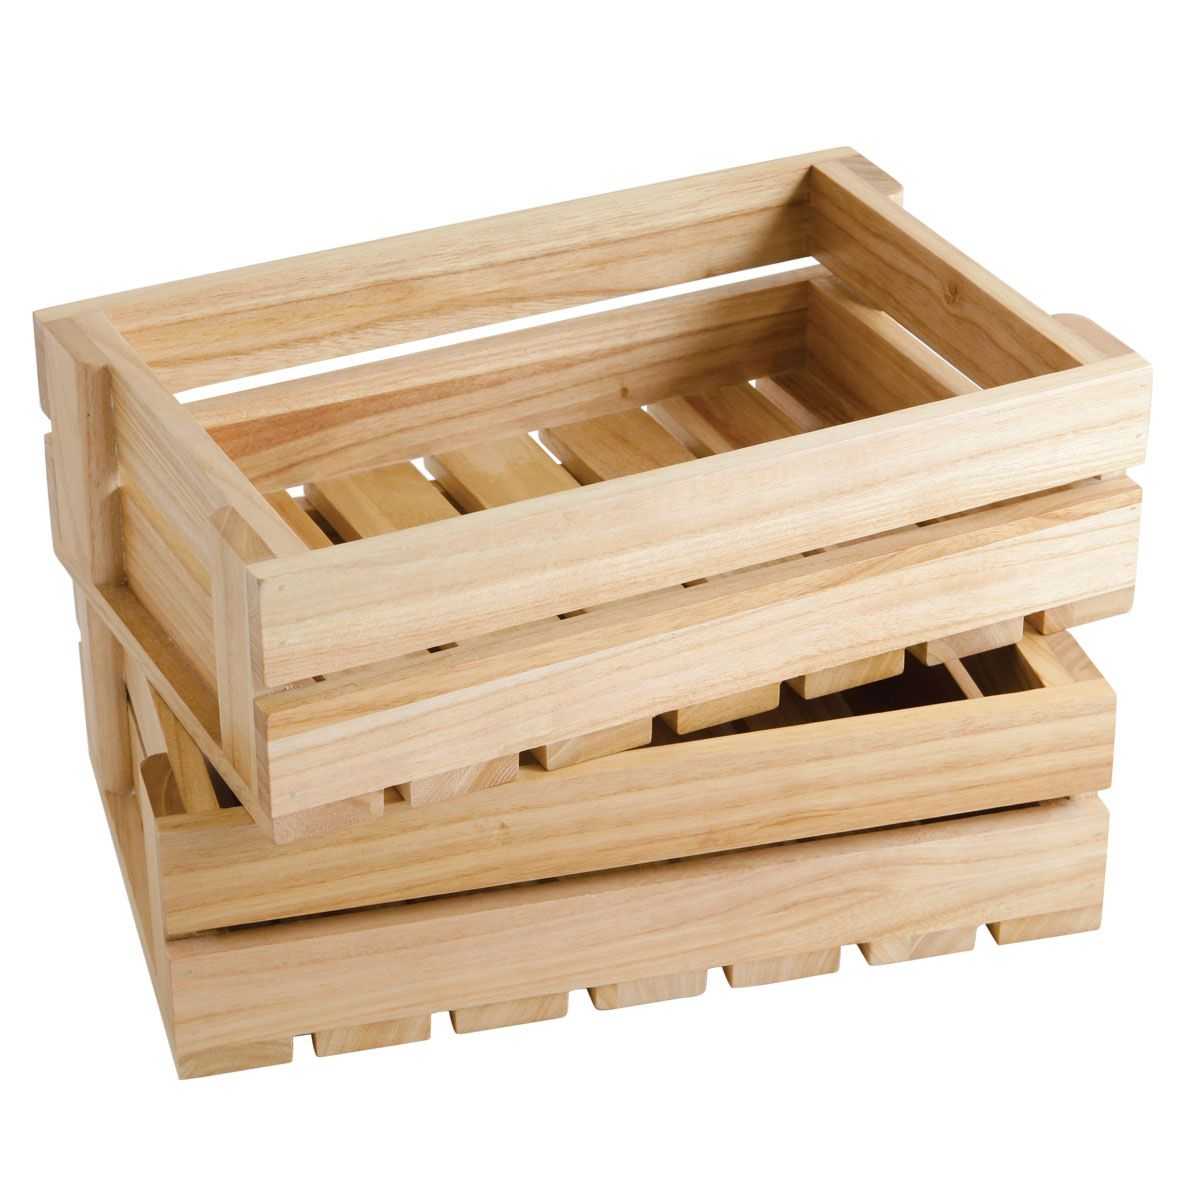 packing crate furniture. antique wood fruit crates small boxsmall plain boxesantique wooden boxwood boxes for vegetables packing crate furniture e